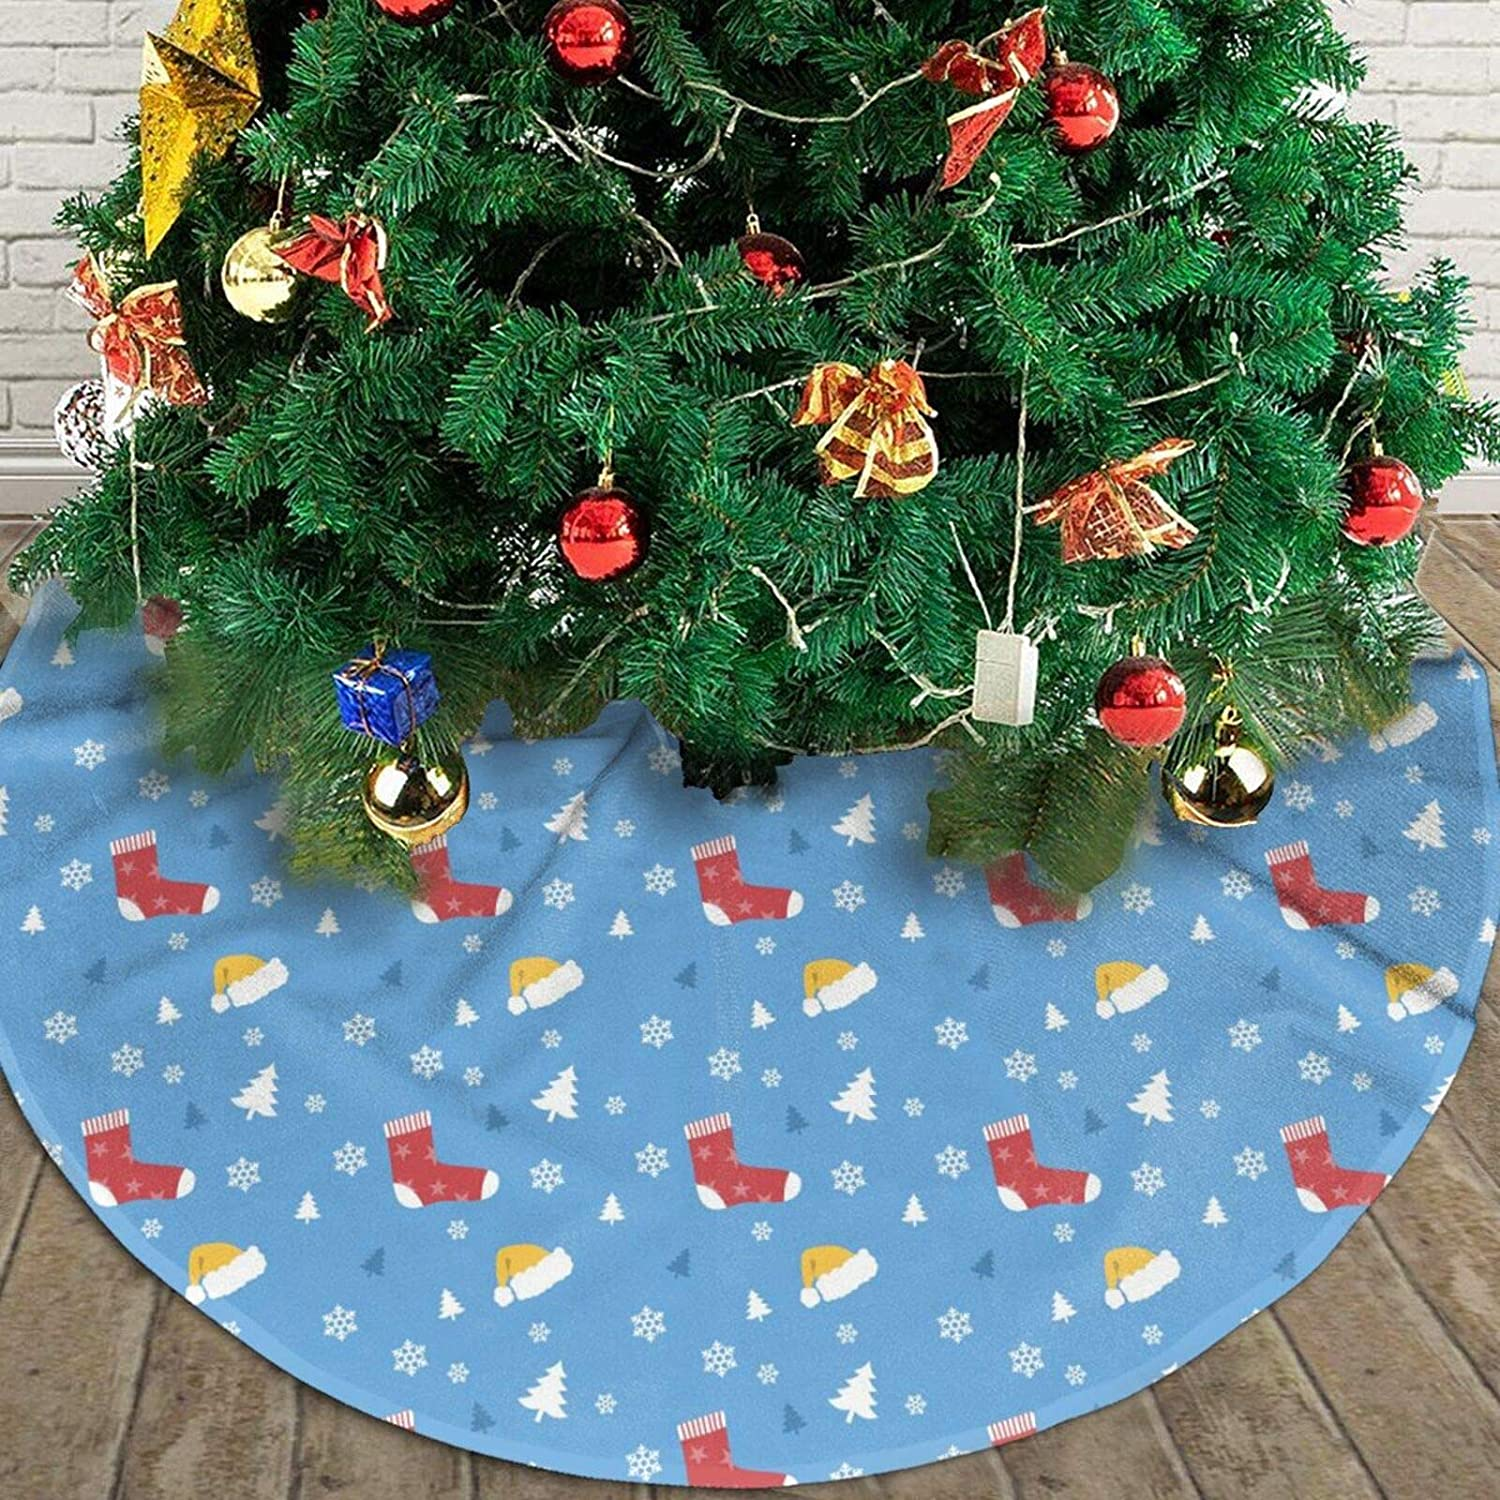 YEAHSPACE Christmas Tree Skirt for Christmas Decorations Holiday Party Decoration